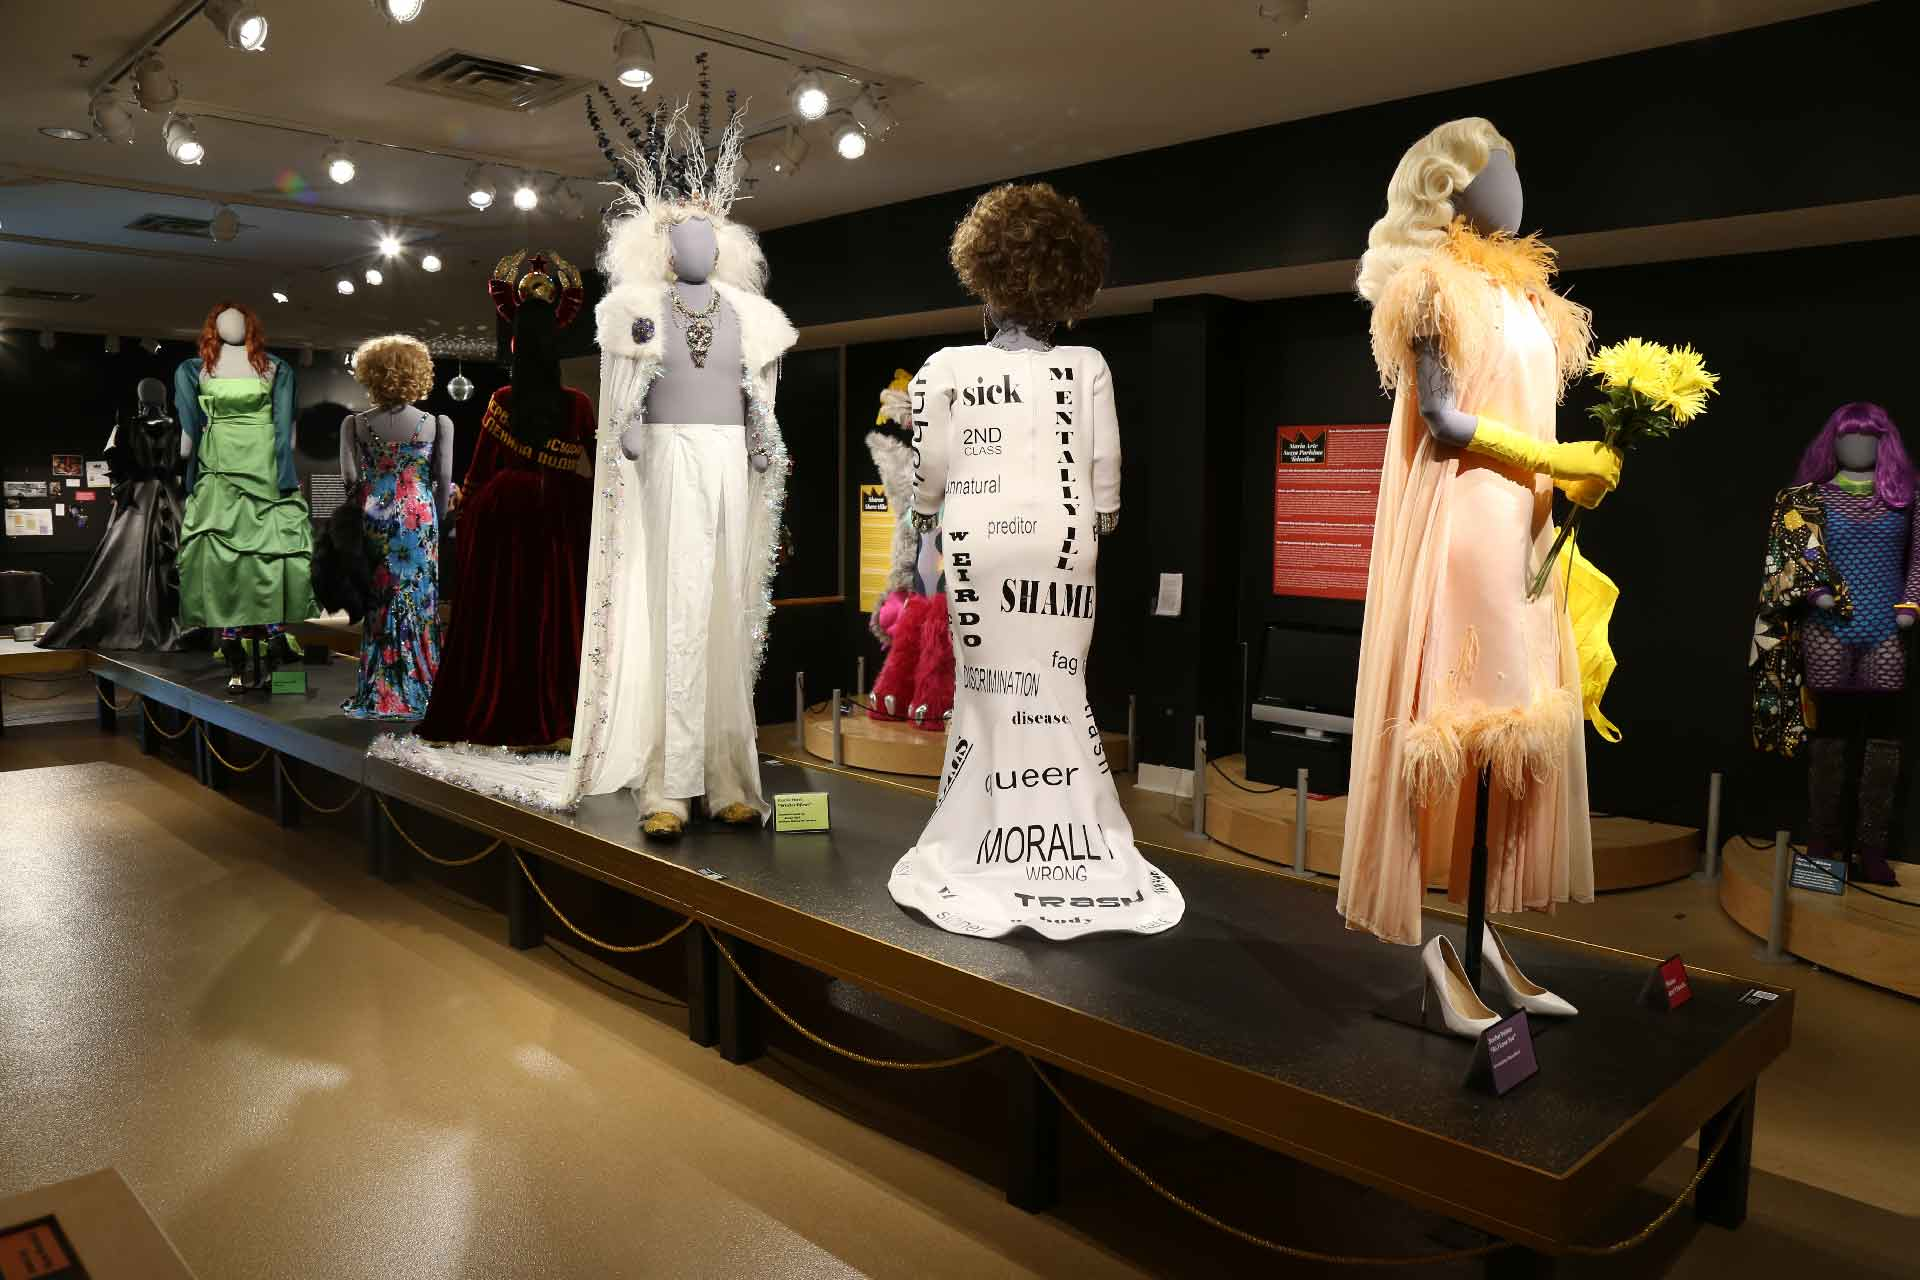 back view of exhibit featuring mannequin in pink drag costume in the front